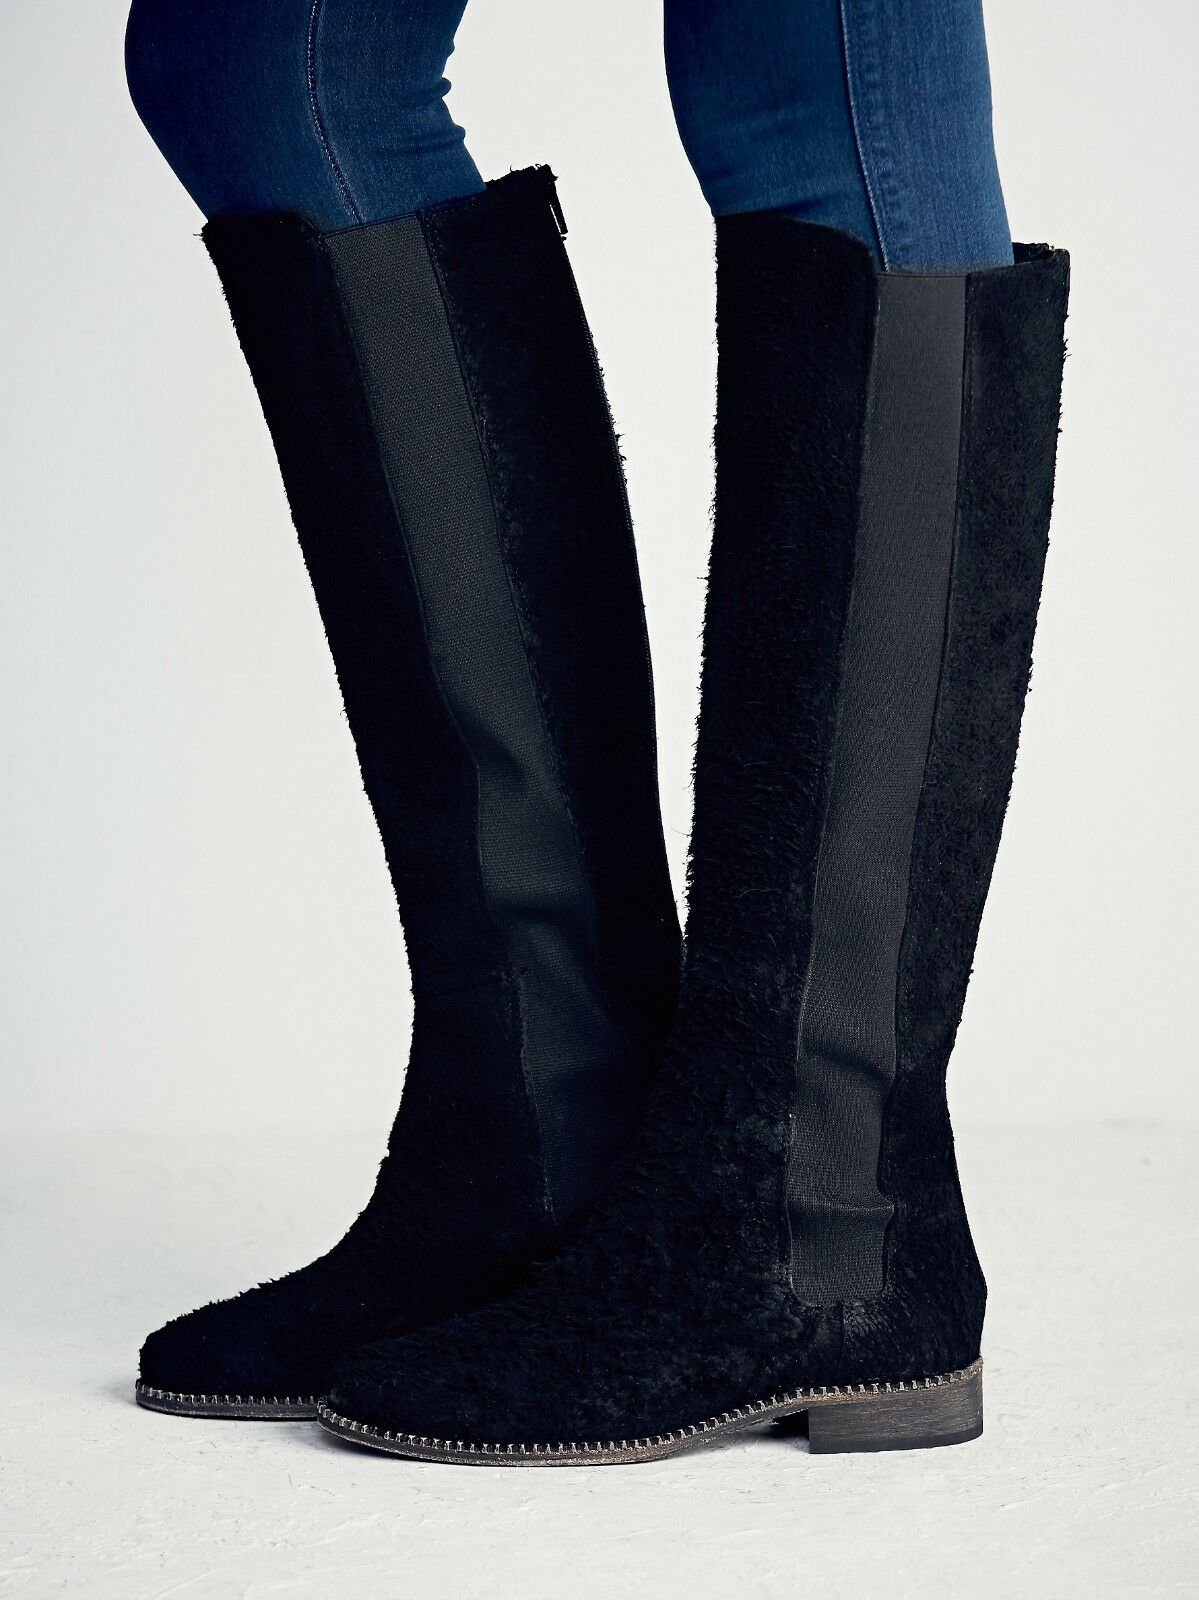 FREE PEOPLE SHOES CALLOW TALL BOOT BLACK 38 NEW BACK ZIP FLAT KNEE HIGH  298